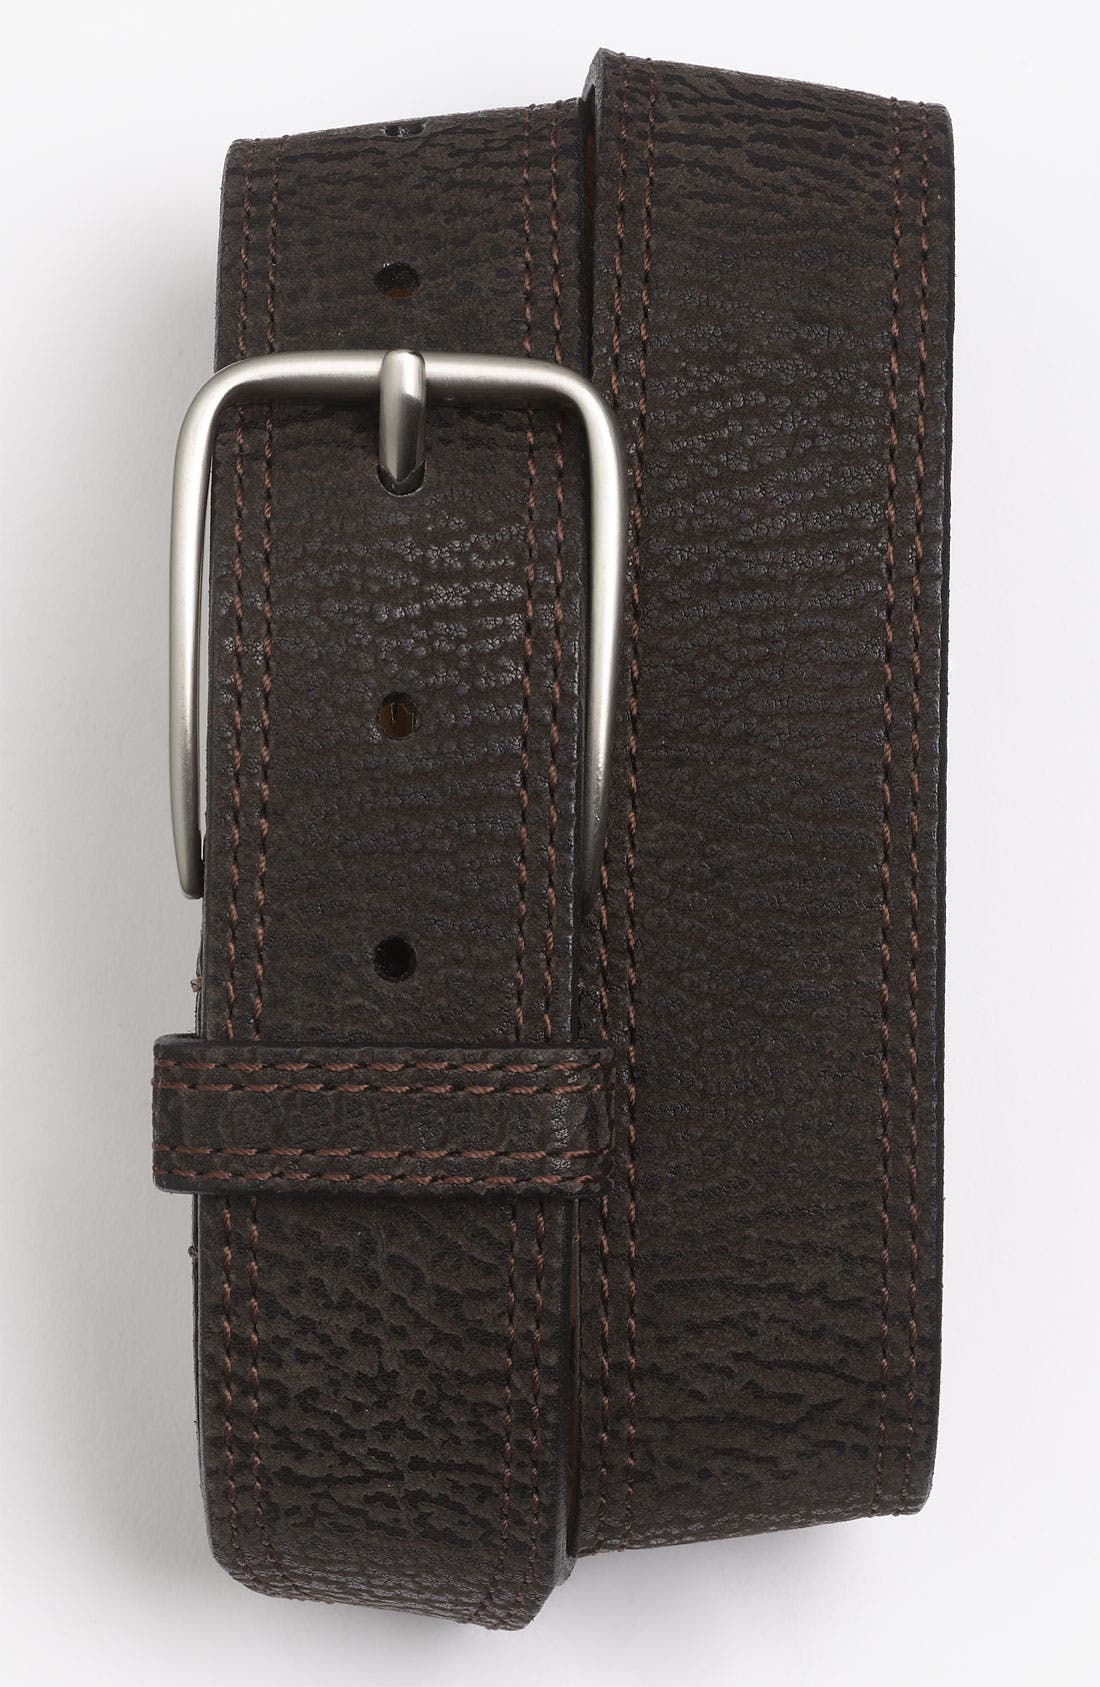 Alternate Image 1 Selected - Remo Tulliani 'Scafa' Leather Belt